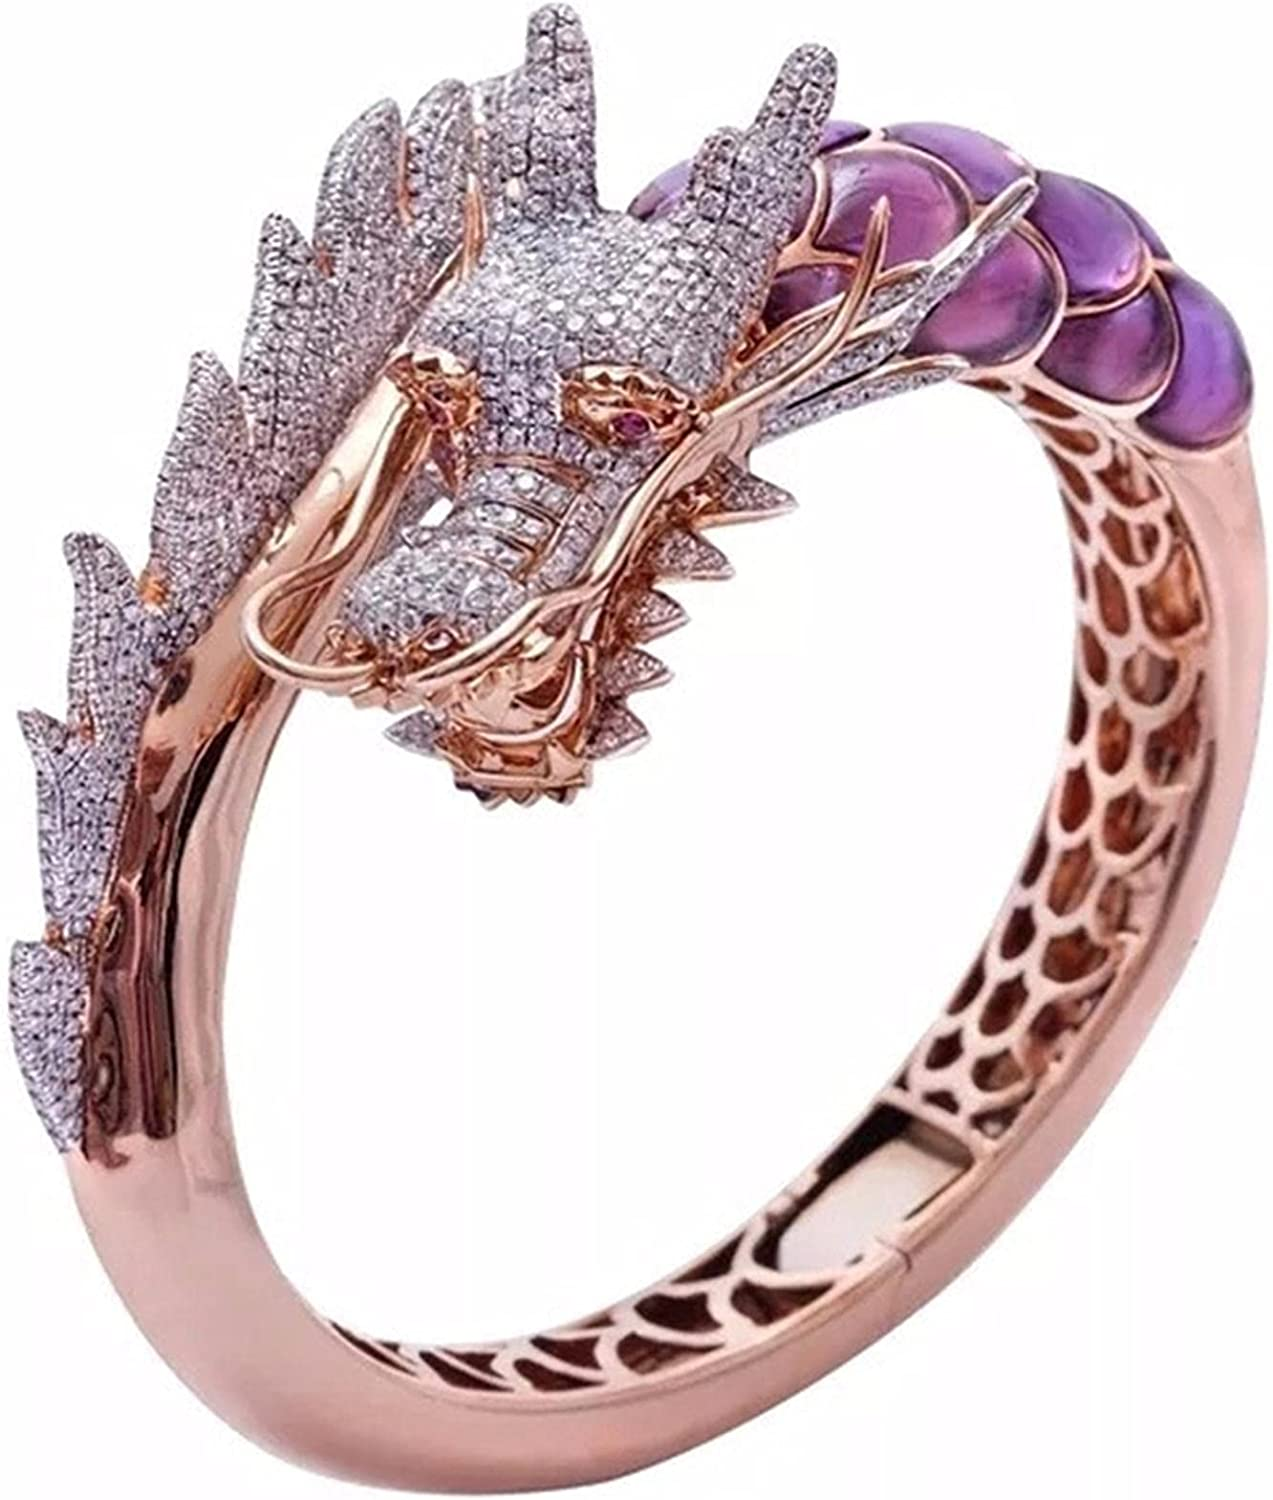 Cfbcc Unique Vintage Dragon Animal Statement Ring Purple Opal Crystal Engagement Wedding Band Rings Jewelry